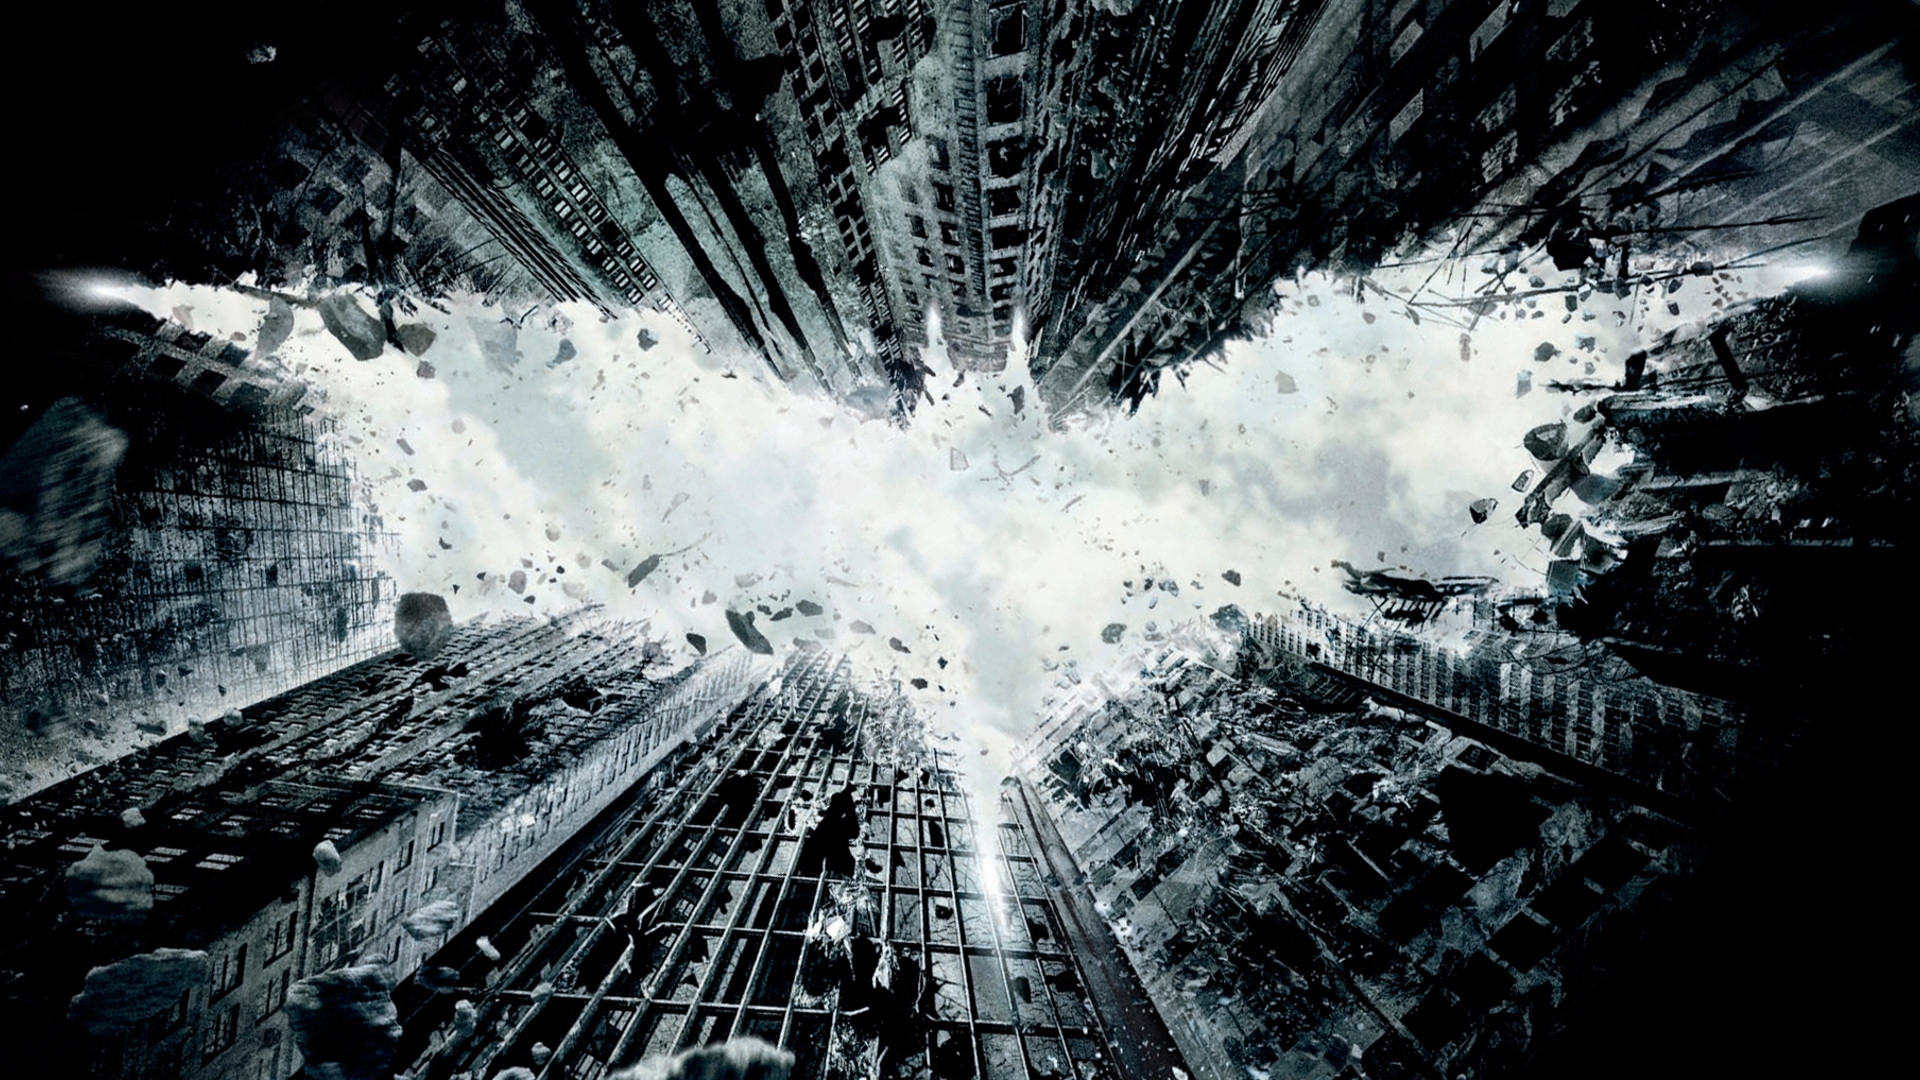 the dark knight rises full hd fond d'écran and arrière-plan